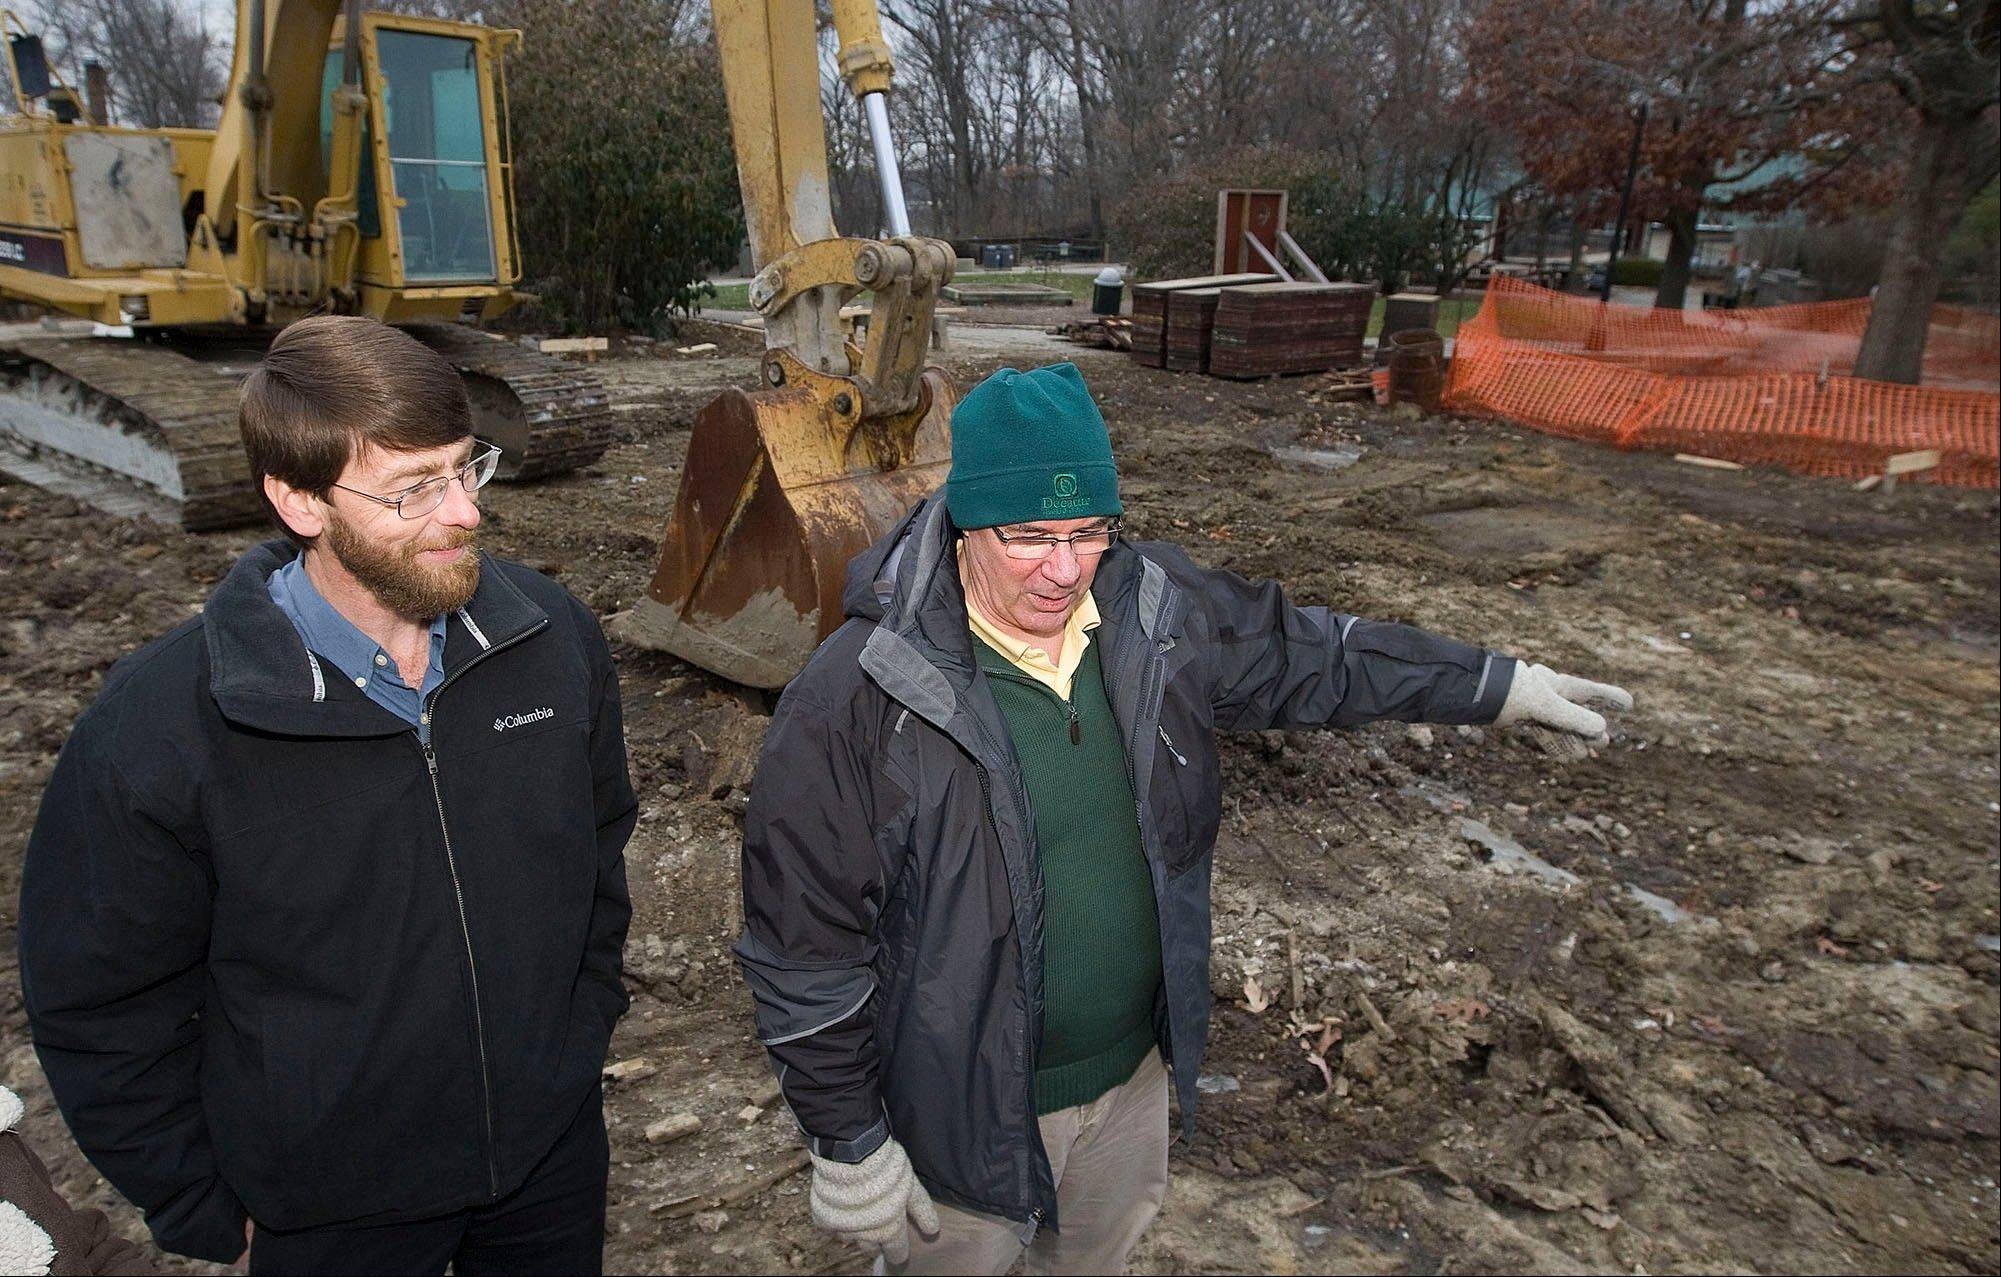 Associated PressScovill Zoo director Dave Webster, left, and Decatur Park District director of operations Jim Kiefer show the work that has recently started for the new penguin exhibit at the Scovill Zoo in Decatur.